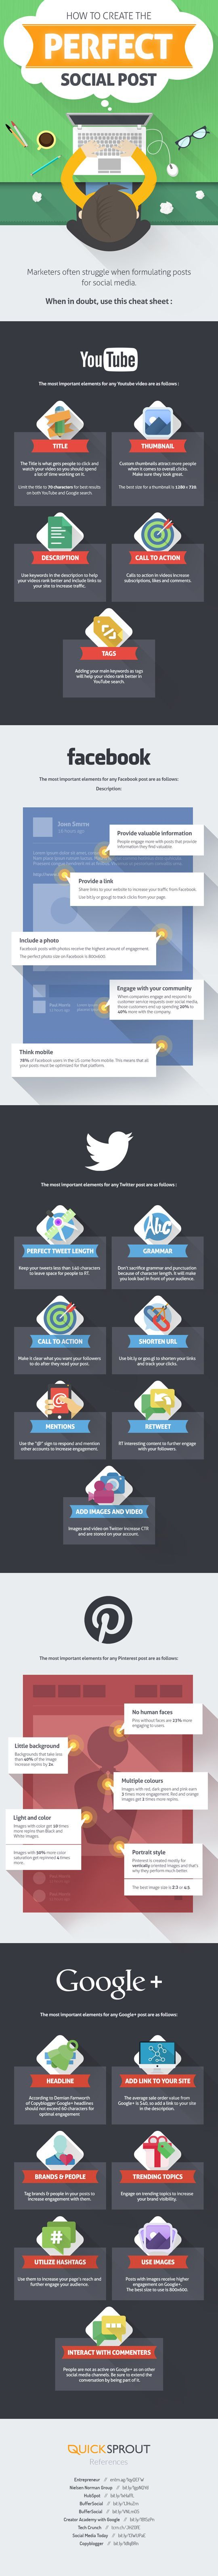 How to create the perfect social media post every time (infographic) - Workopolis | via @borntobesocial